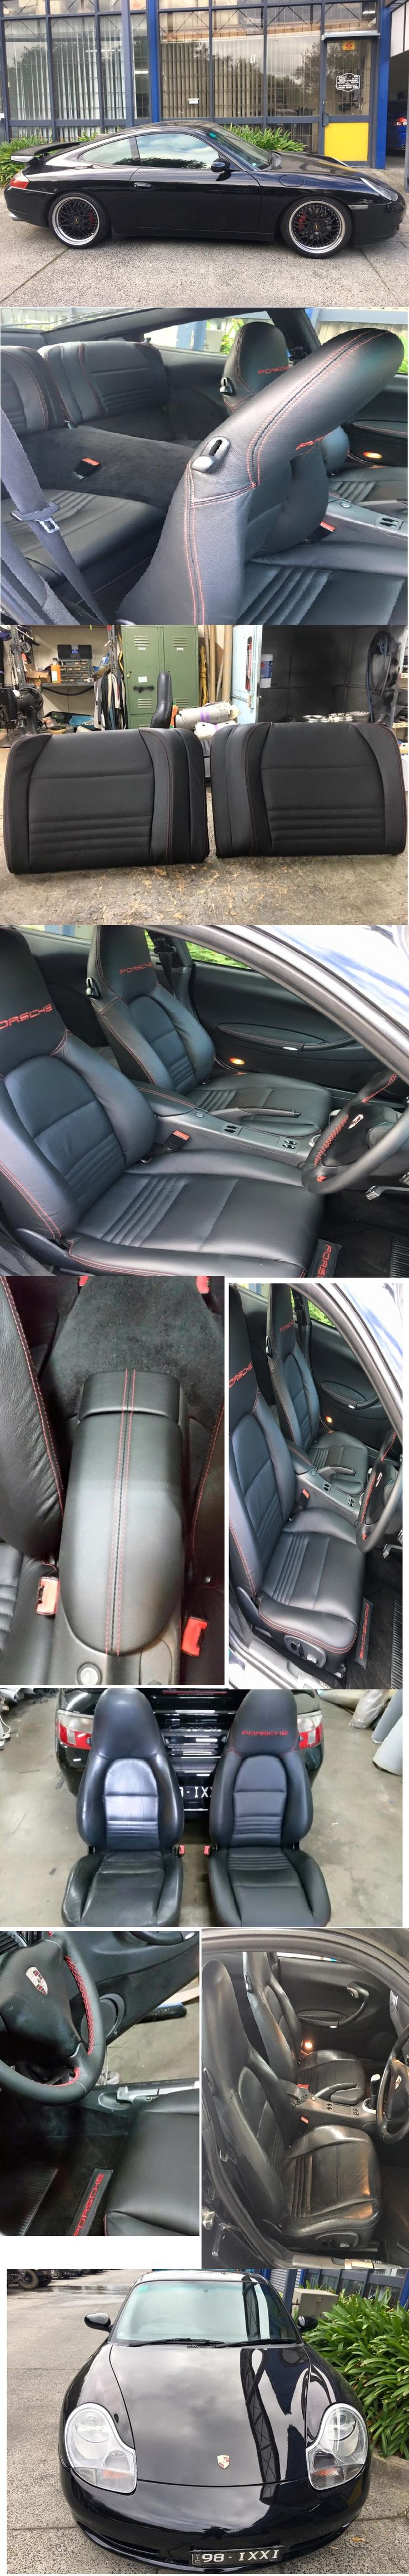 Porsche Carrera. Retrim front & rear seats in Italian leather. Embroidery PORSCHE on headrests. Red stitching. Retrim doortrims armrests,console lid, console panel,gearshift boot,steering wheel in Italian leather with red stitching. Embroidery PORSCHE on front carpets.